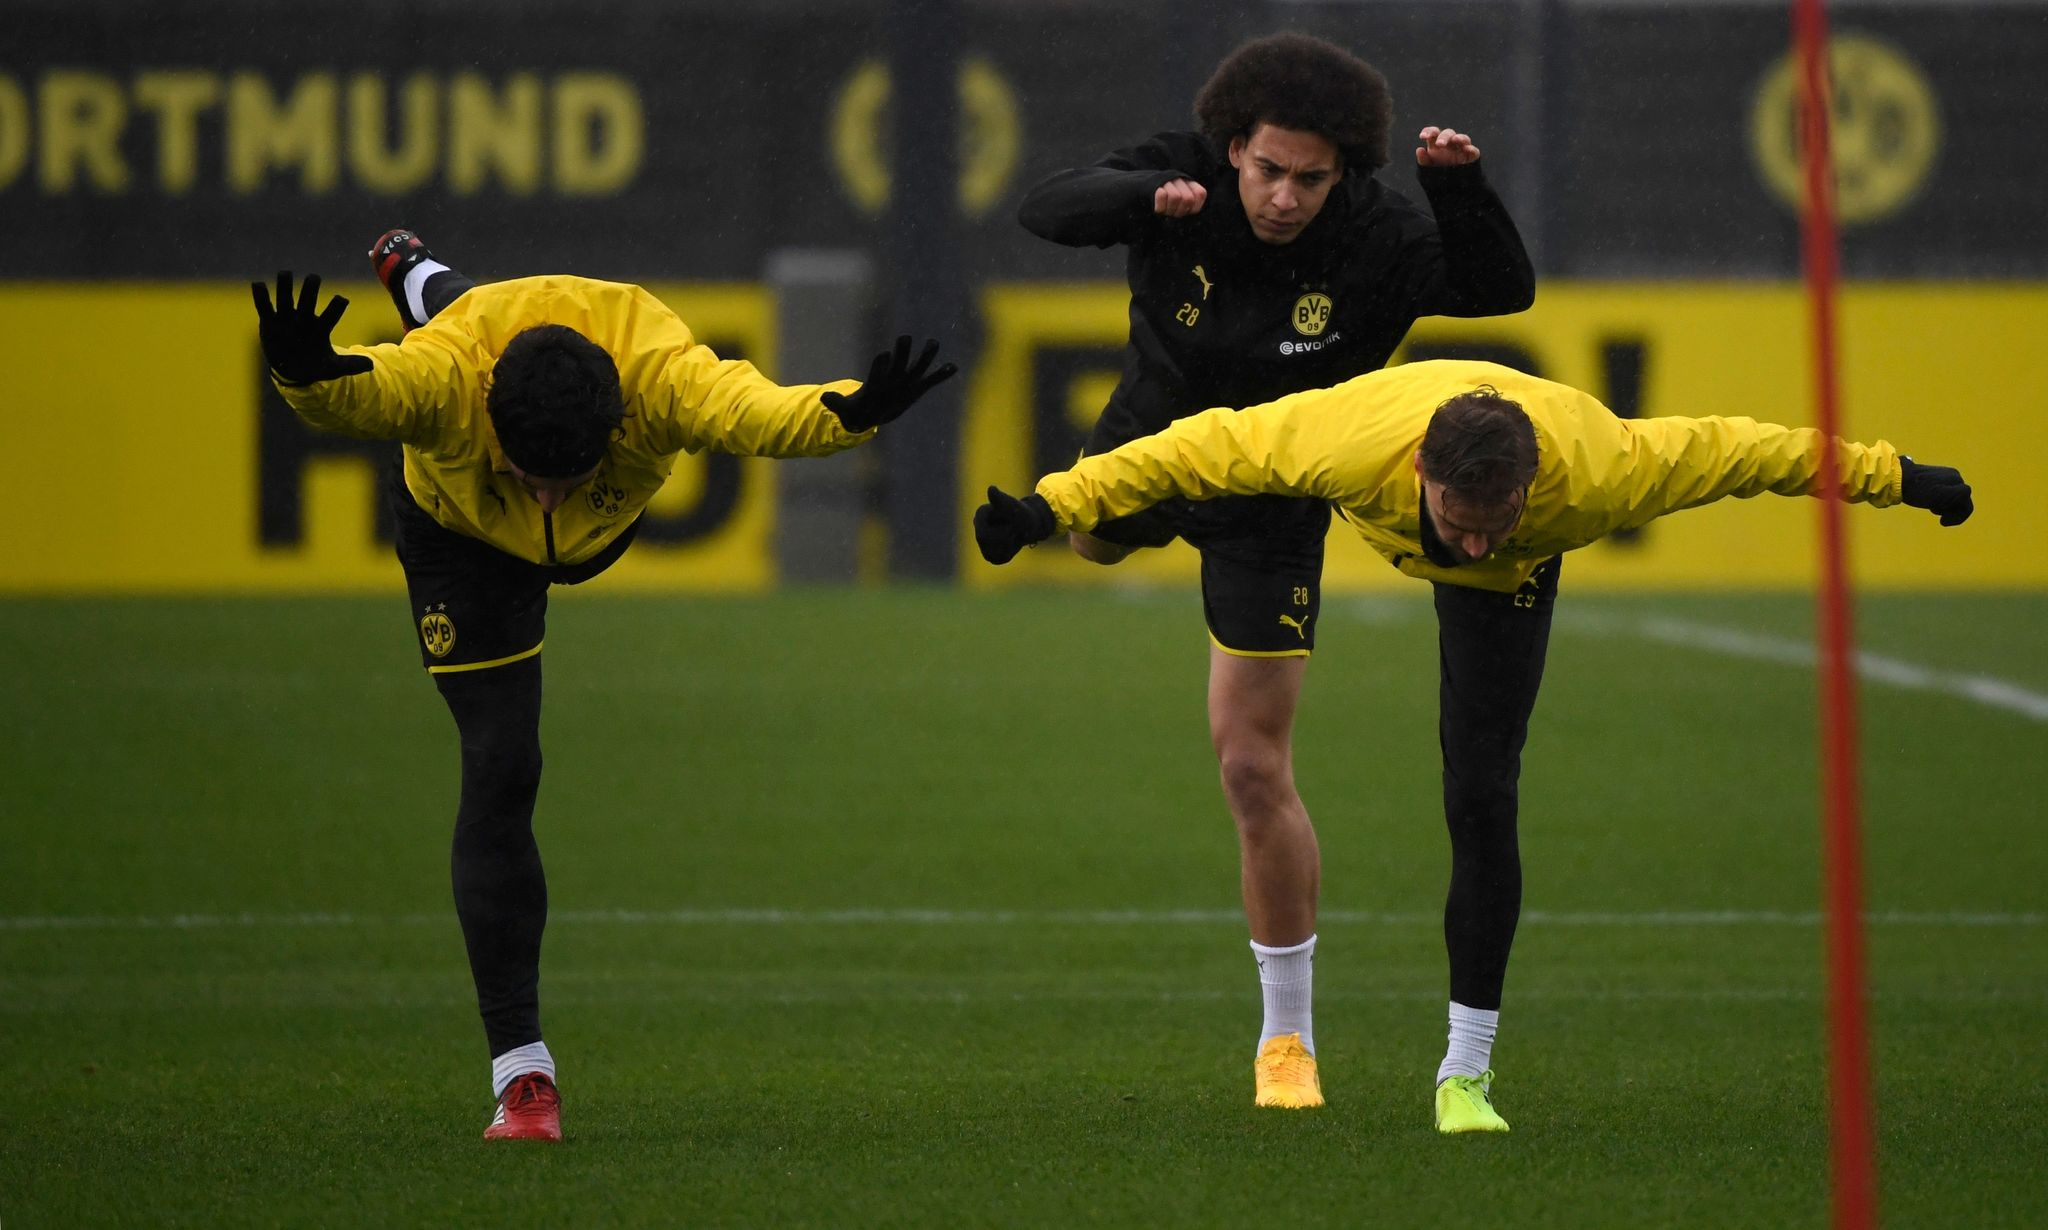 lt;HIT gt;Dortmund lt;/HIT gt;s German defender Mats Hummels, lt;HIT gt;Dortmund lt;/HIT gt;s Belgian midfielder Axel Witsel and lt;HIT gt;Dortmund lt;/HIT gt;s German defender Marcel Schmelzer warm up during a training session on the eve of the UEFA Champions League round of 16 first leg match BVB Borussia lt;HIT gt;Dortmund lt;/HIT gt; v Paris SG in lt;HIT gt;Dortmund lt;/HIT gt;, western Germany, on February 17, 2020. (Photo by INA FASSBENDER / AFP)